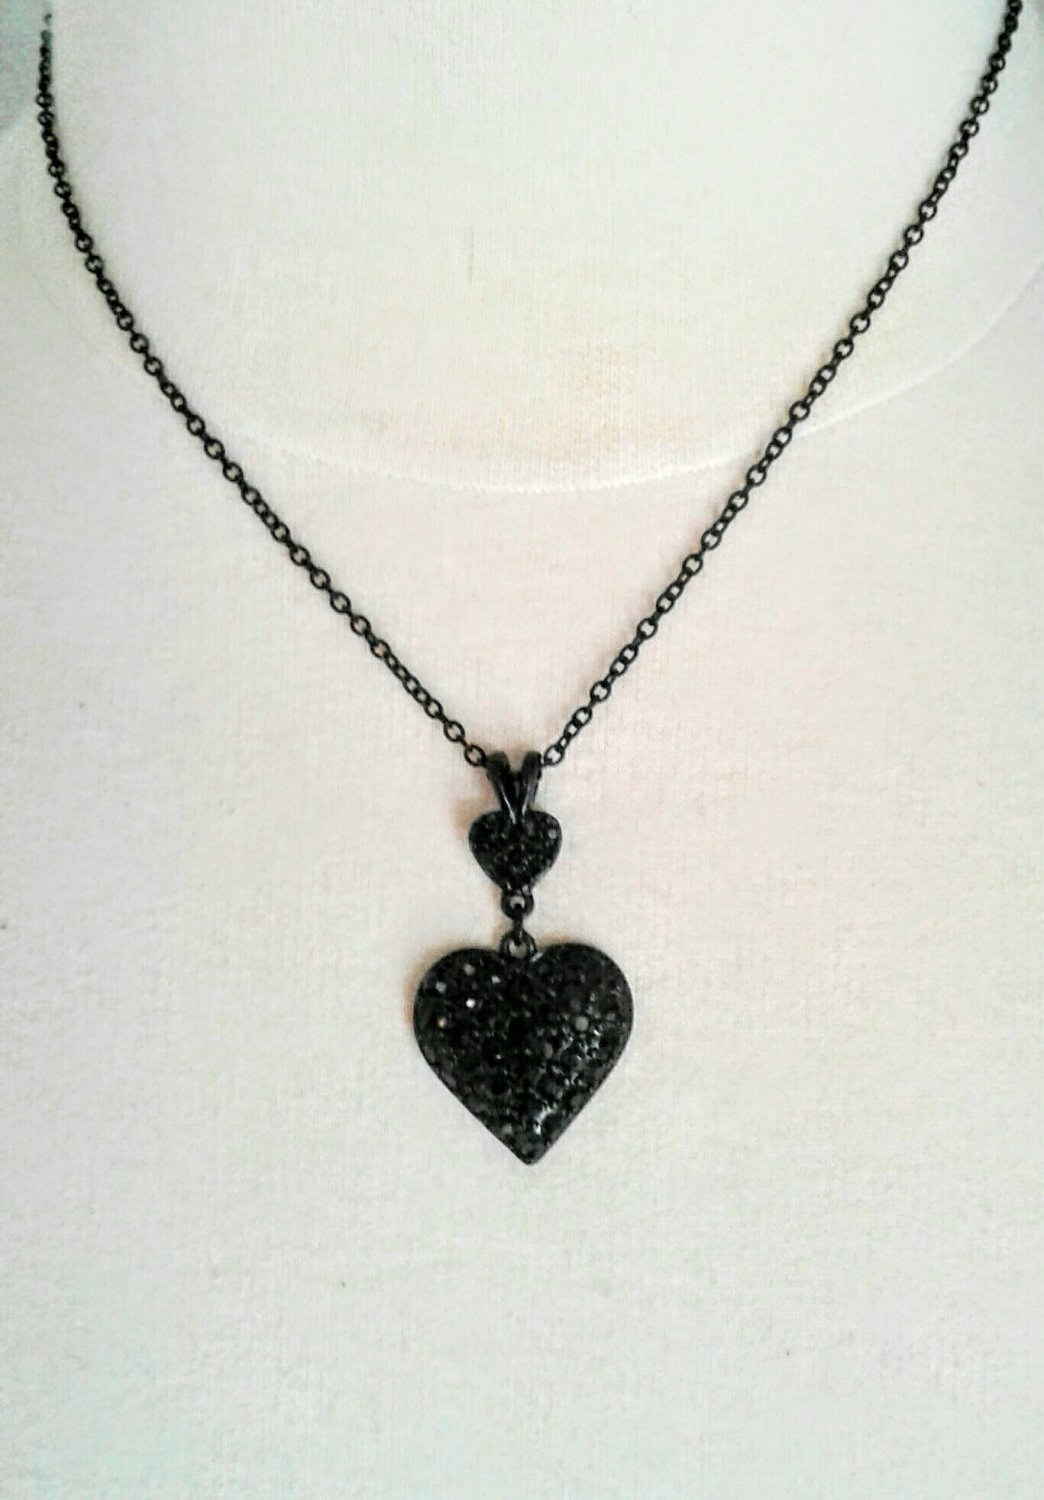 Vintage Double Heart Black Crystal Necklace, Double Heart Necklace, Crystal Heart Necklace